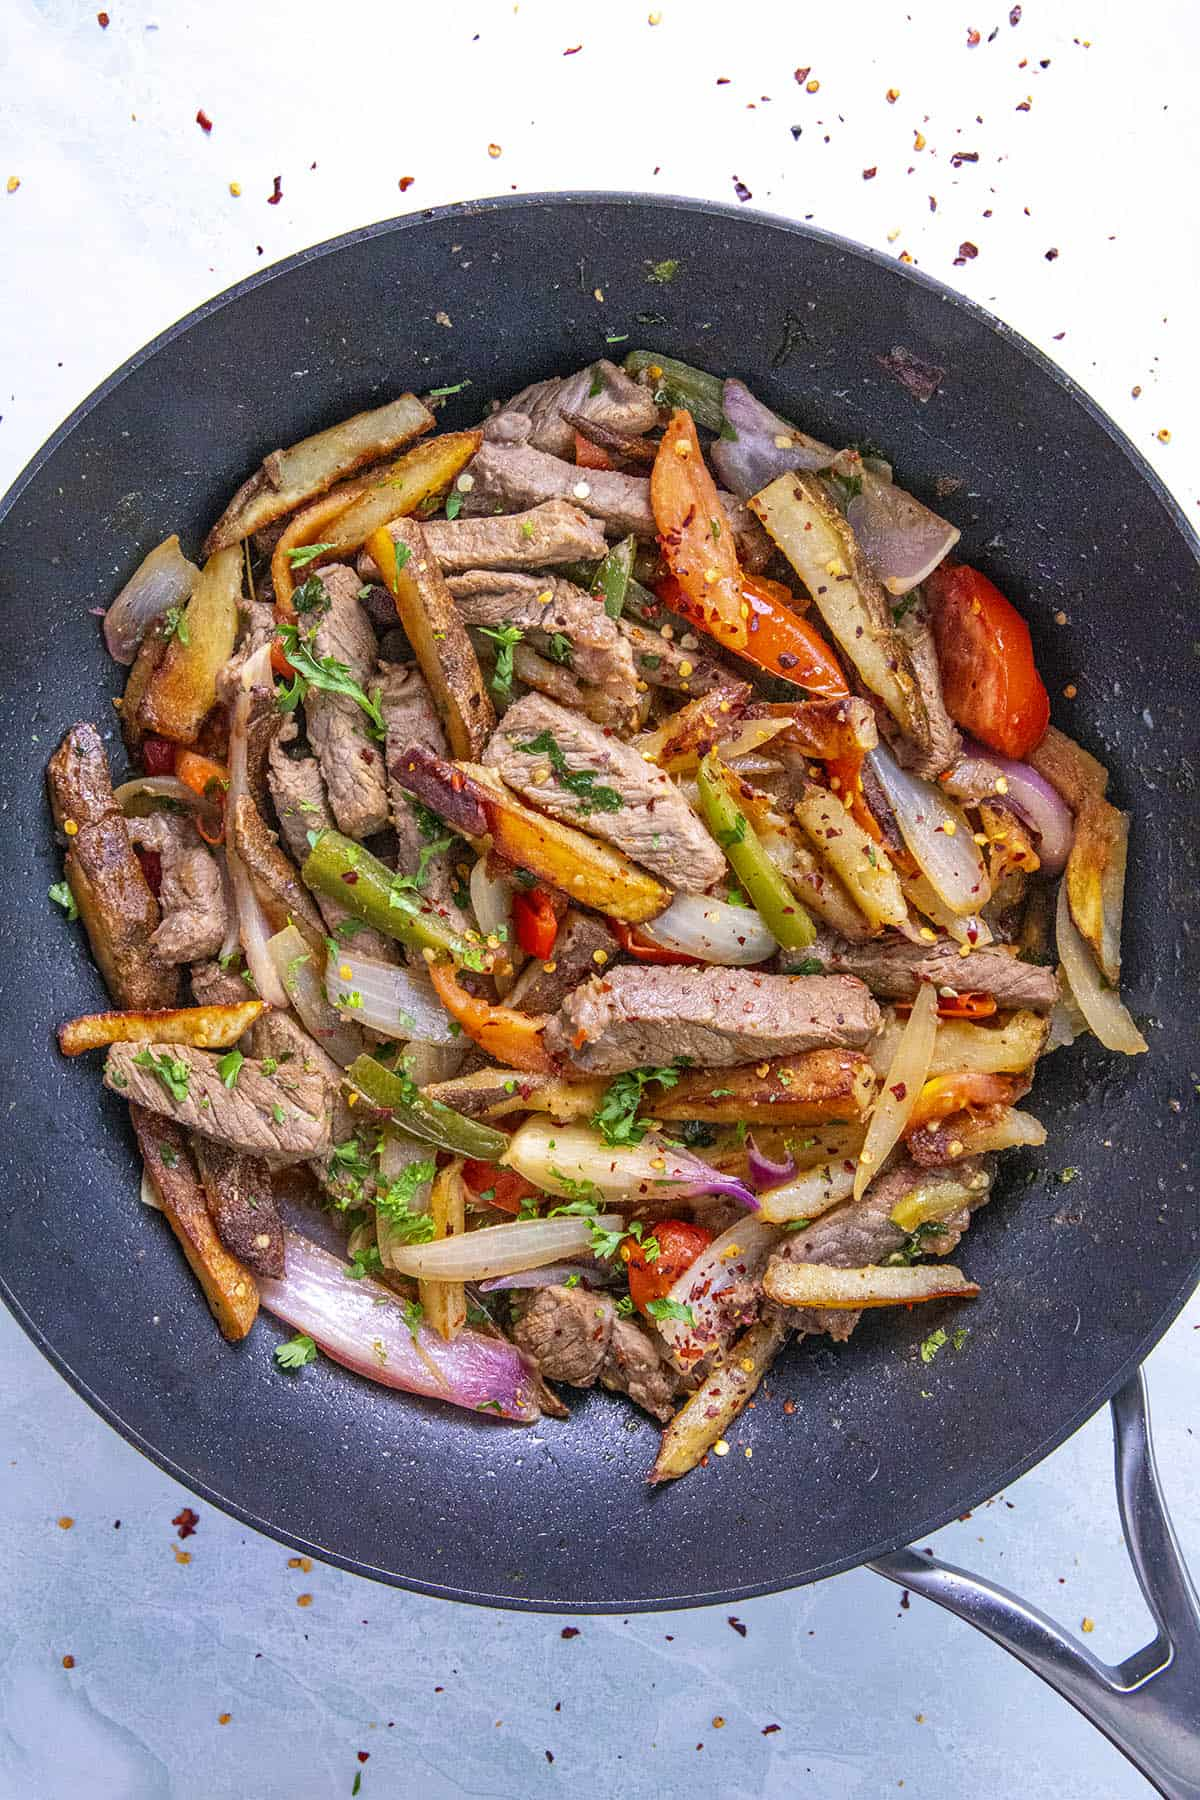 Peruvian Beef Stir Fry with French Fries (Lomo Saltado) in a pan, ready to serve